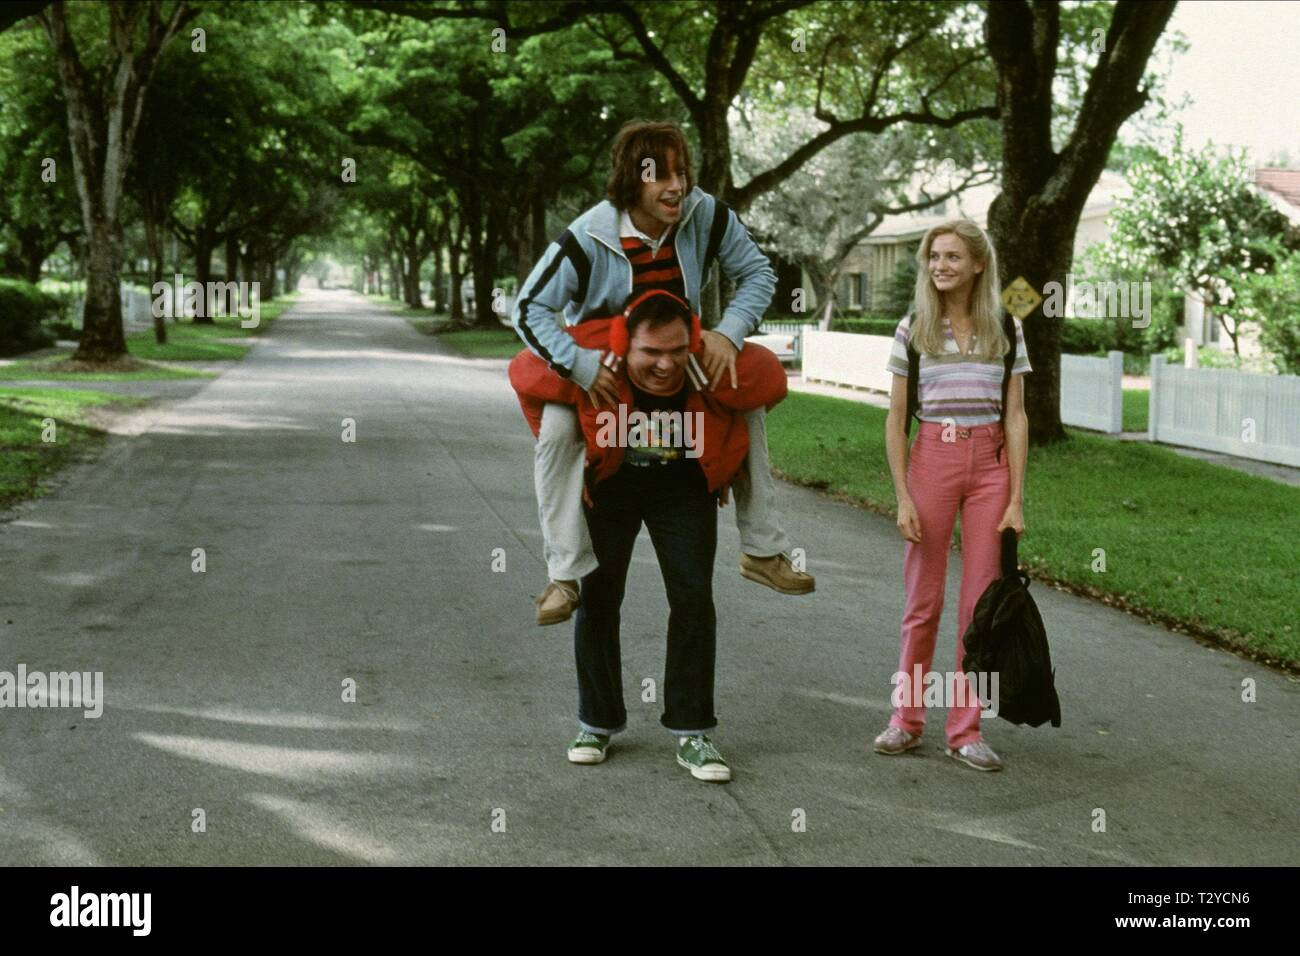 BEN STILLER, W. EARL BROWN, CAMERON DIAZ, THERE'S SOMETHING ABOUT MARY, 1998 - Stock Image